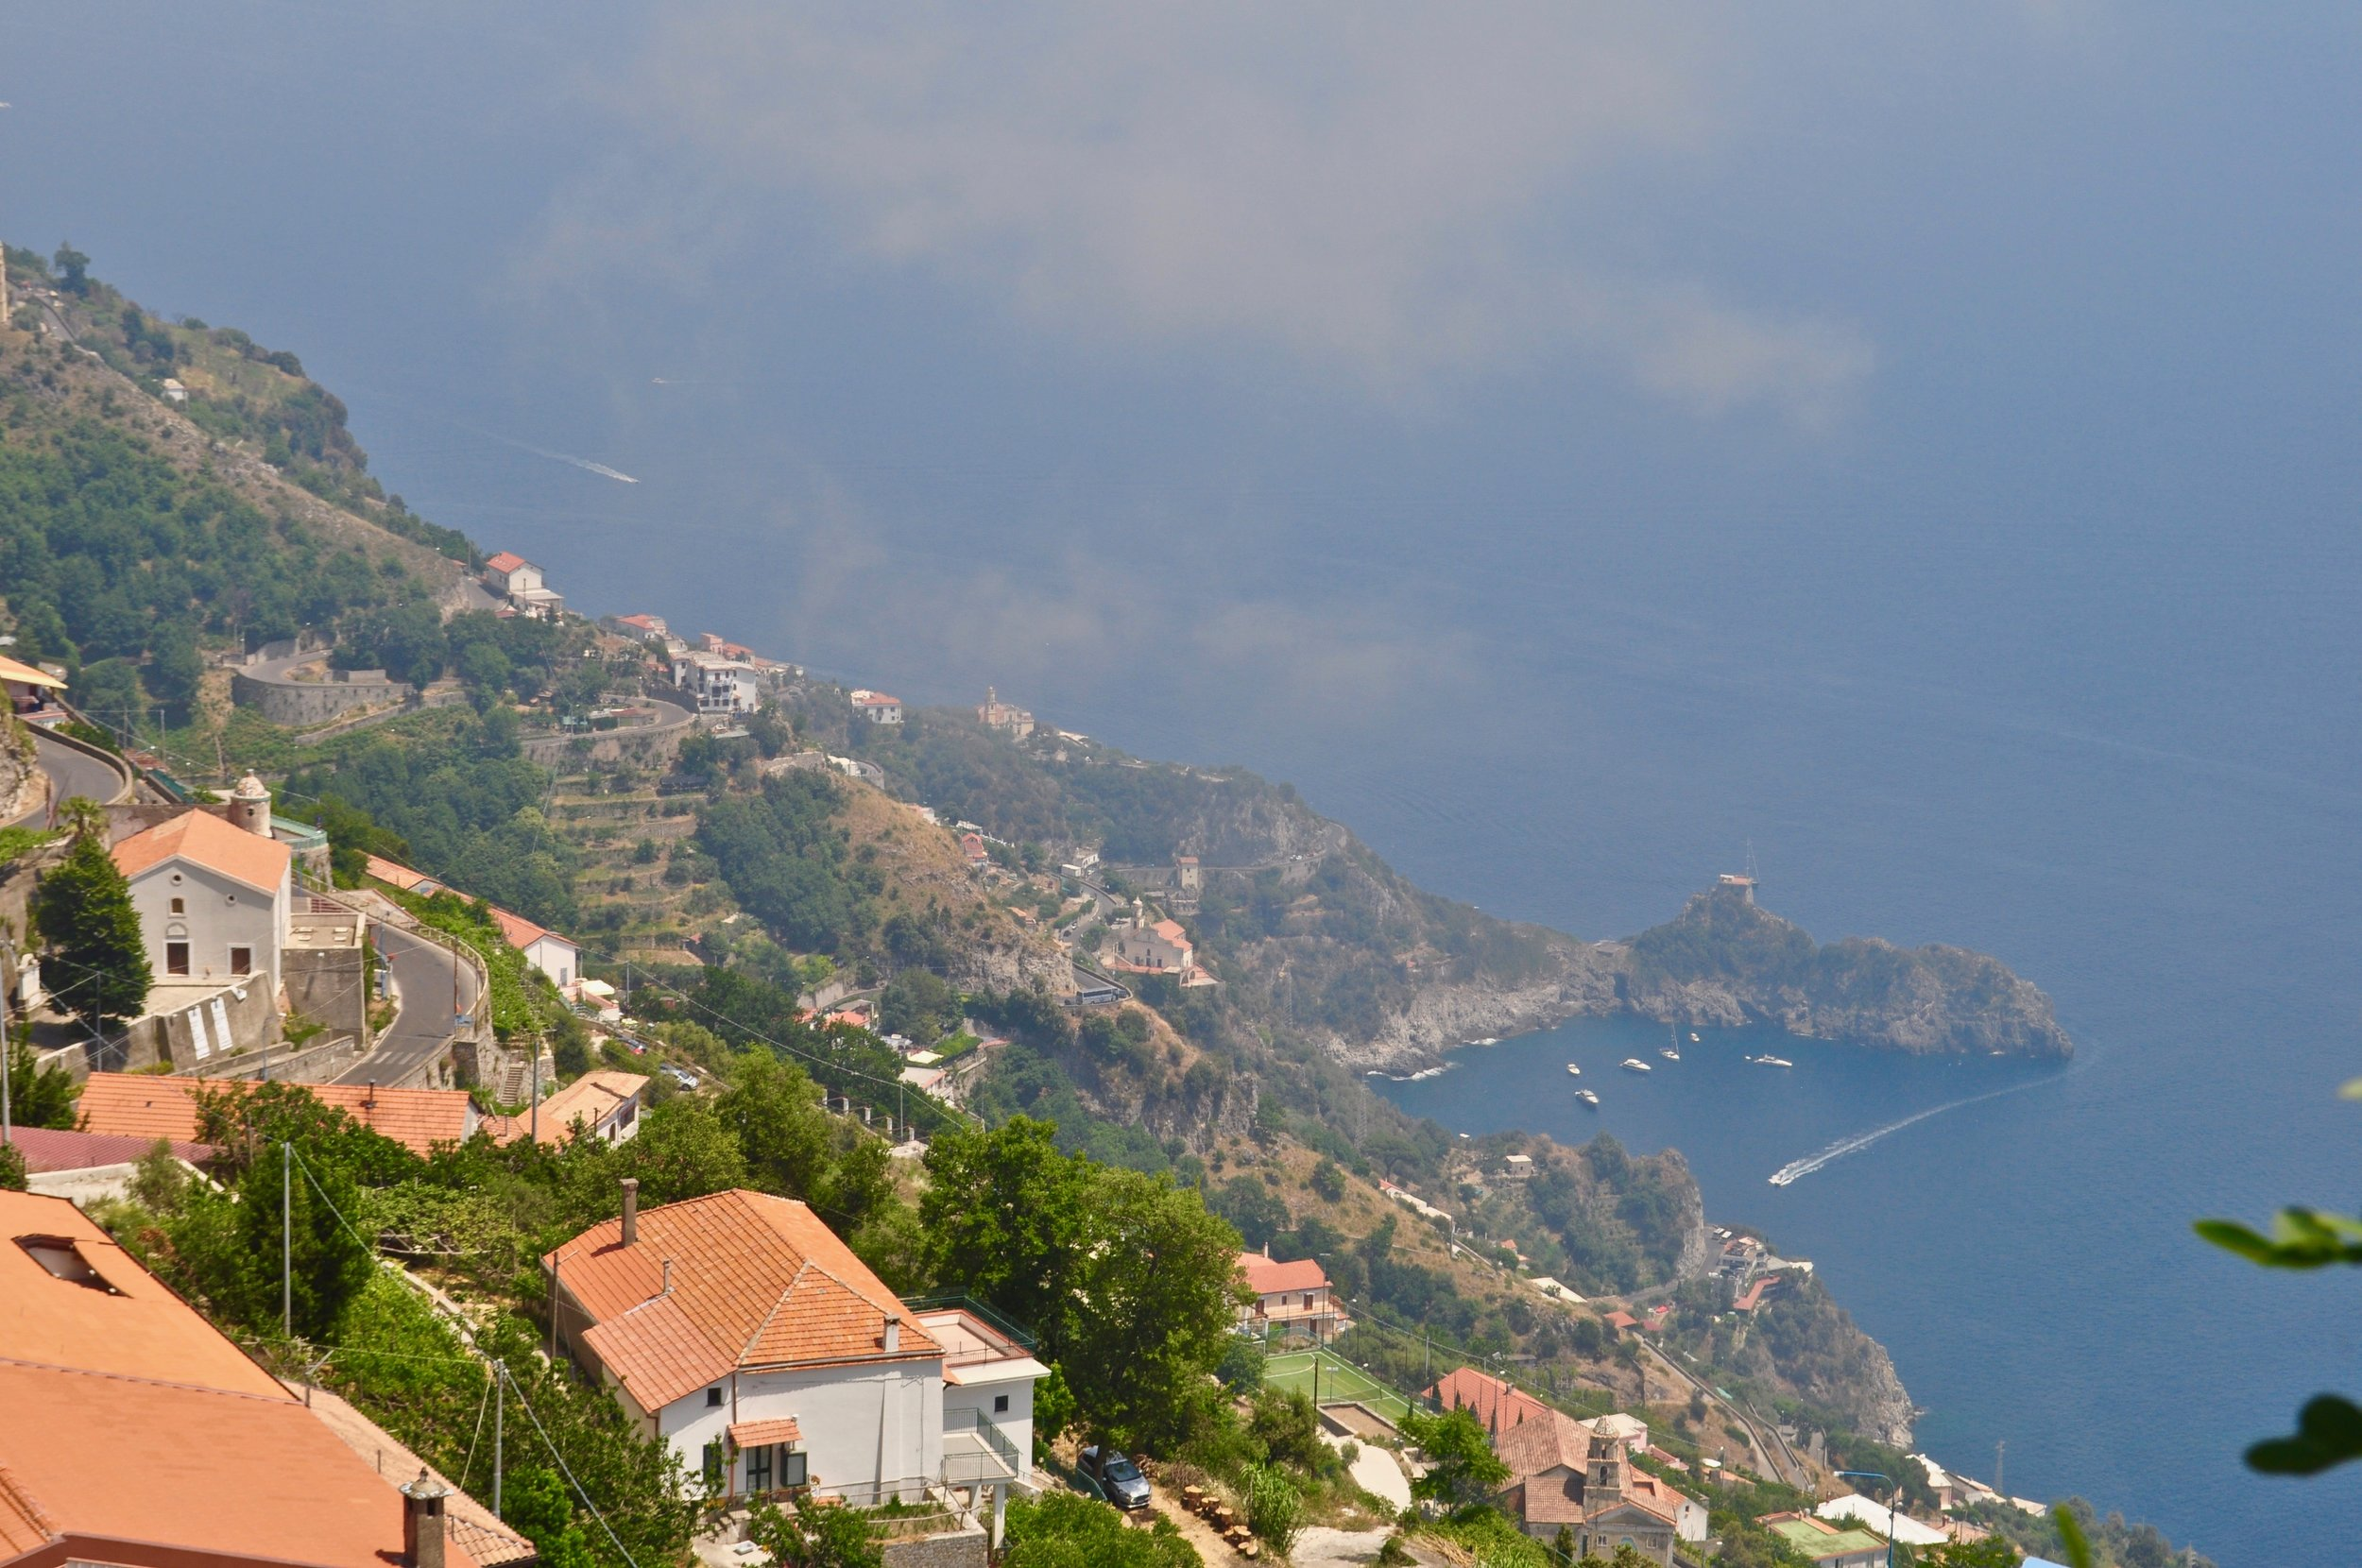 Our first view of the Amalfi Coast